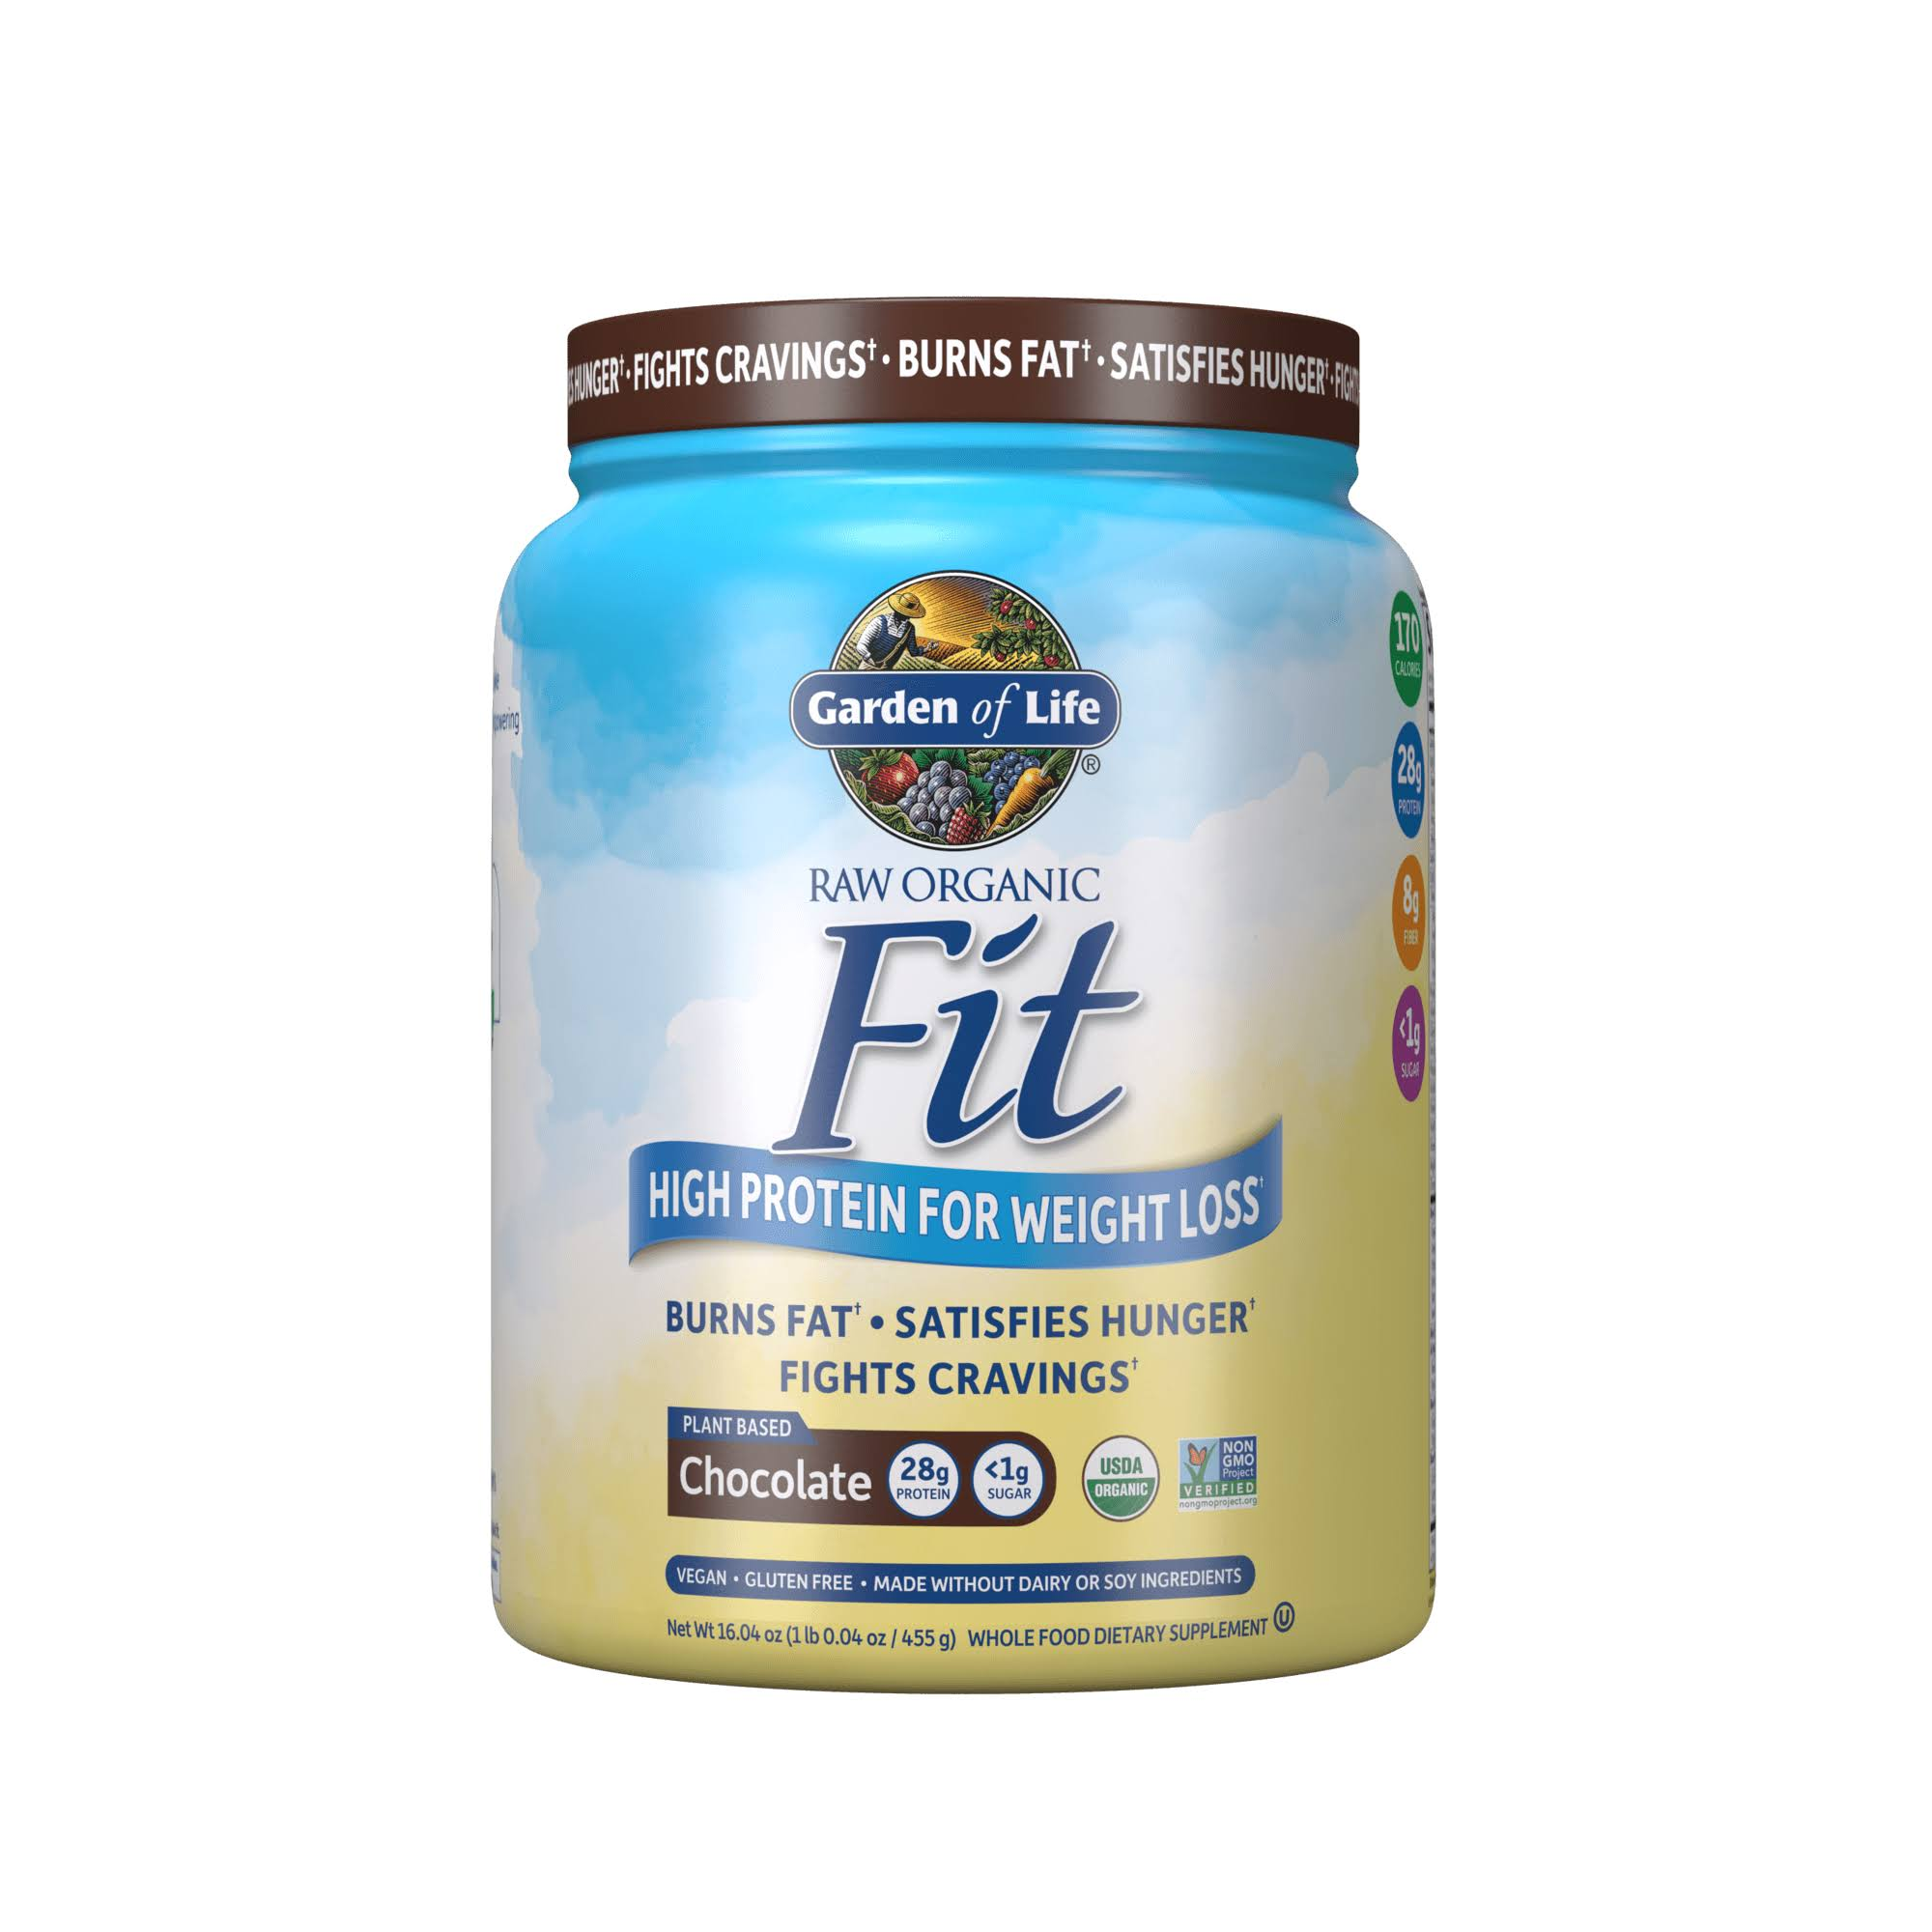 Garden of Life Raw Fit Protein Powder - Chocolate